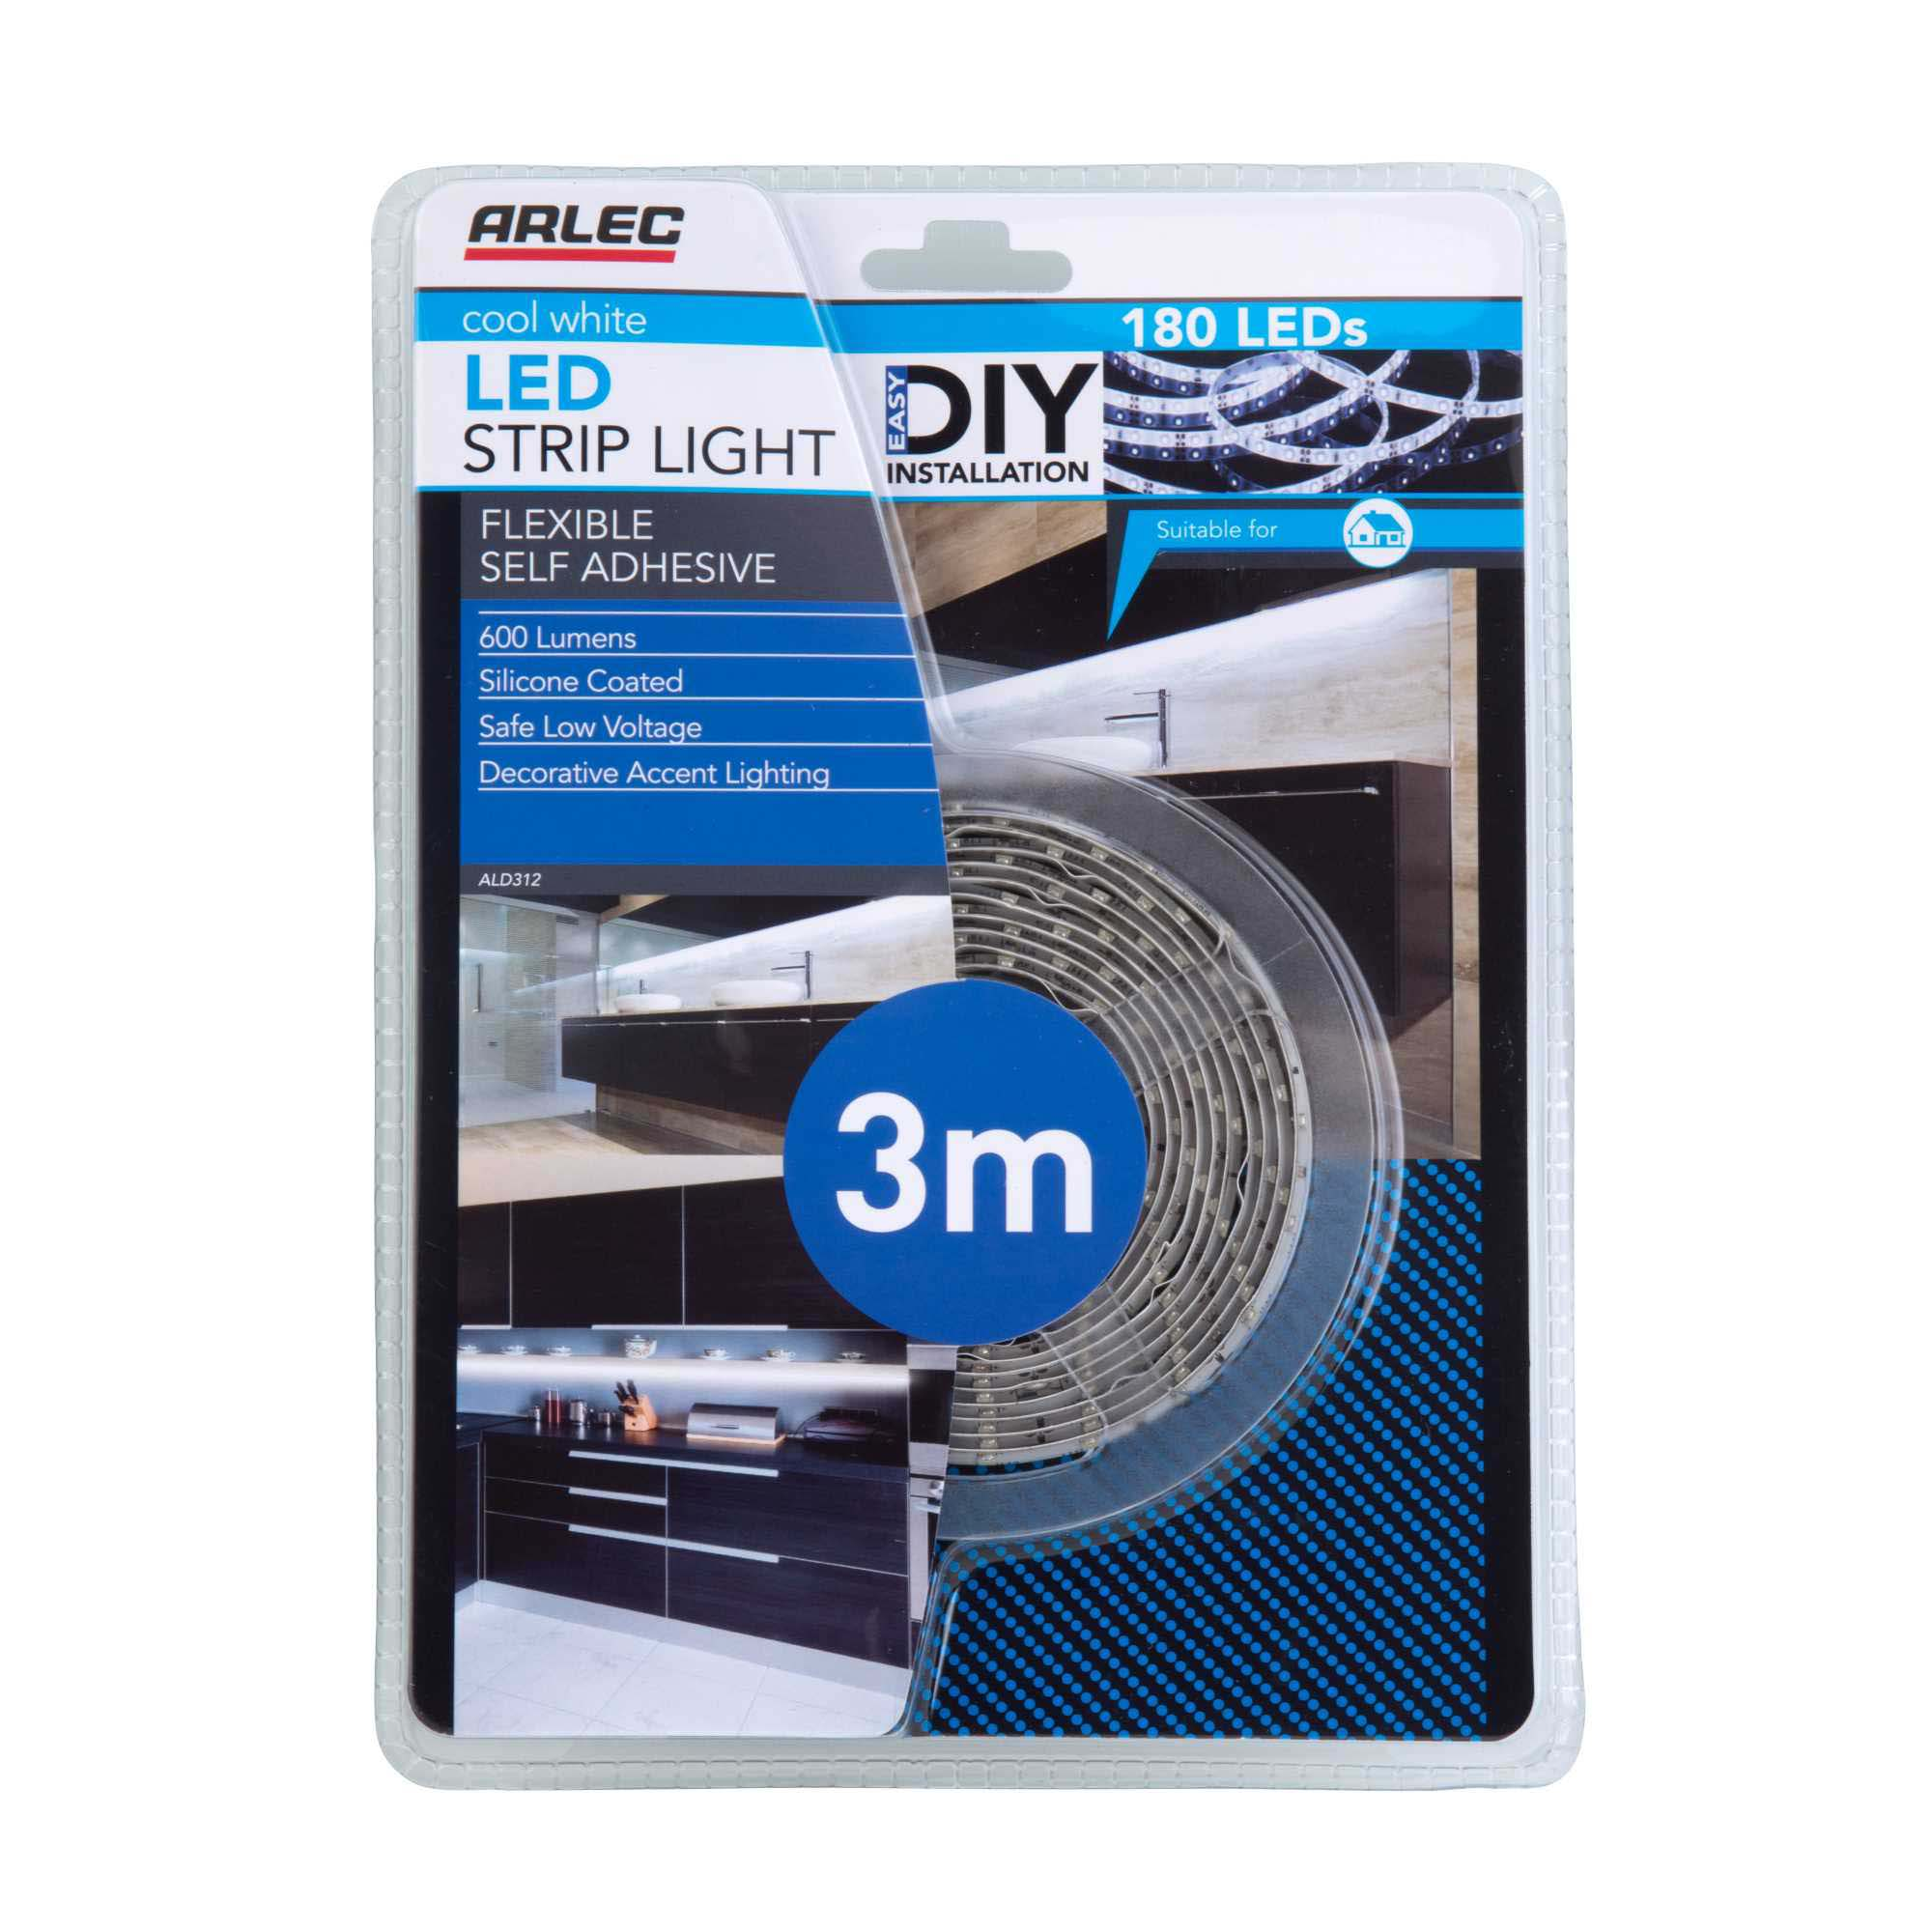 3m cool white silicone coated led strip light